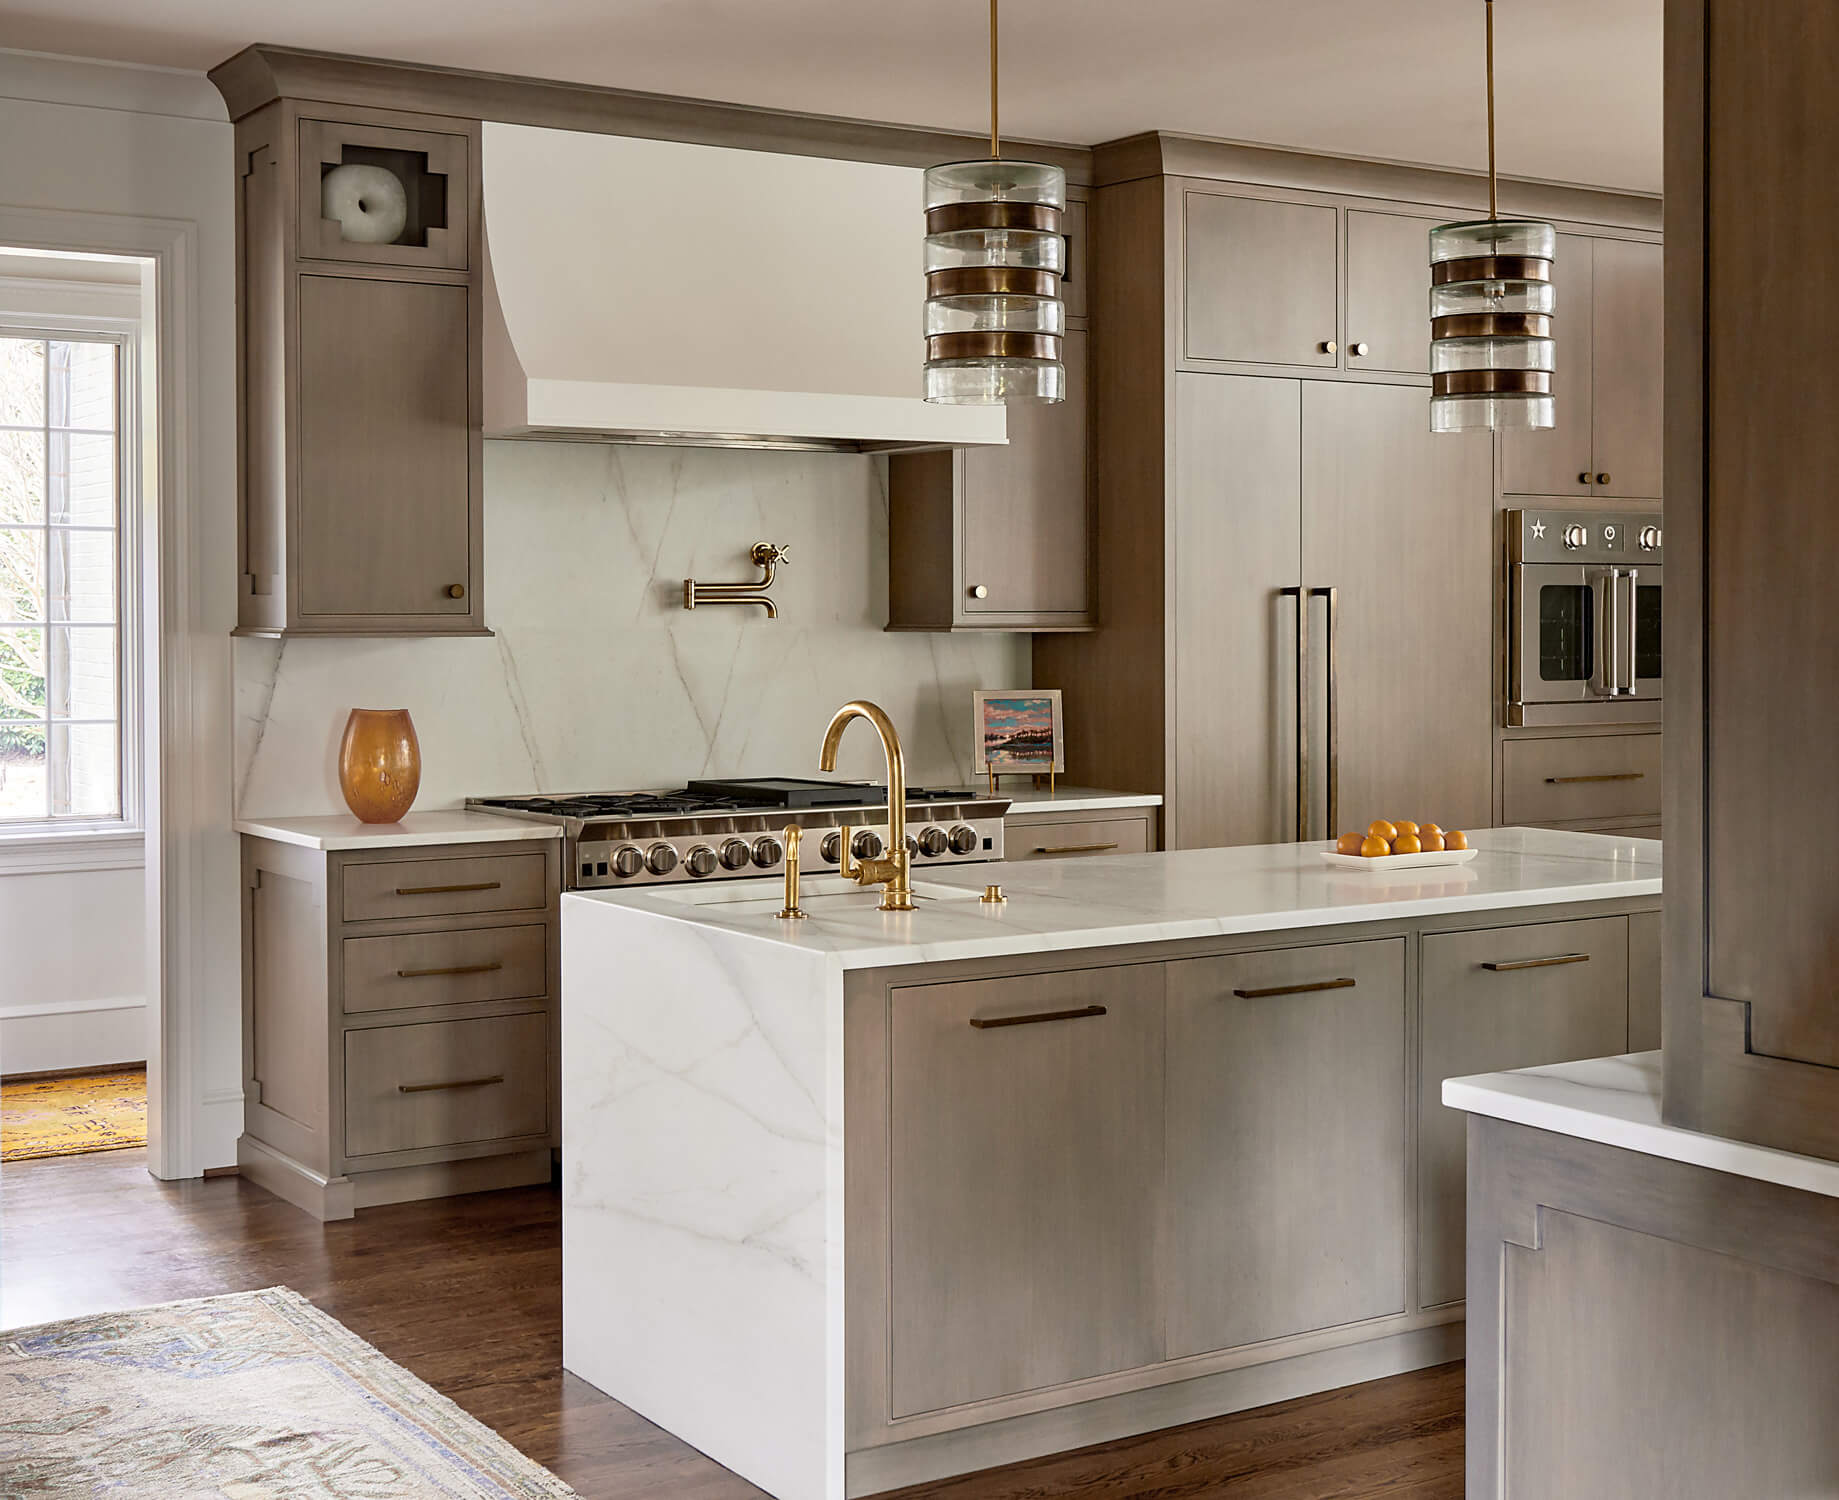 large center island with waterfall edge countertop